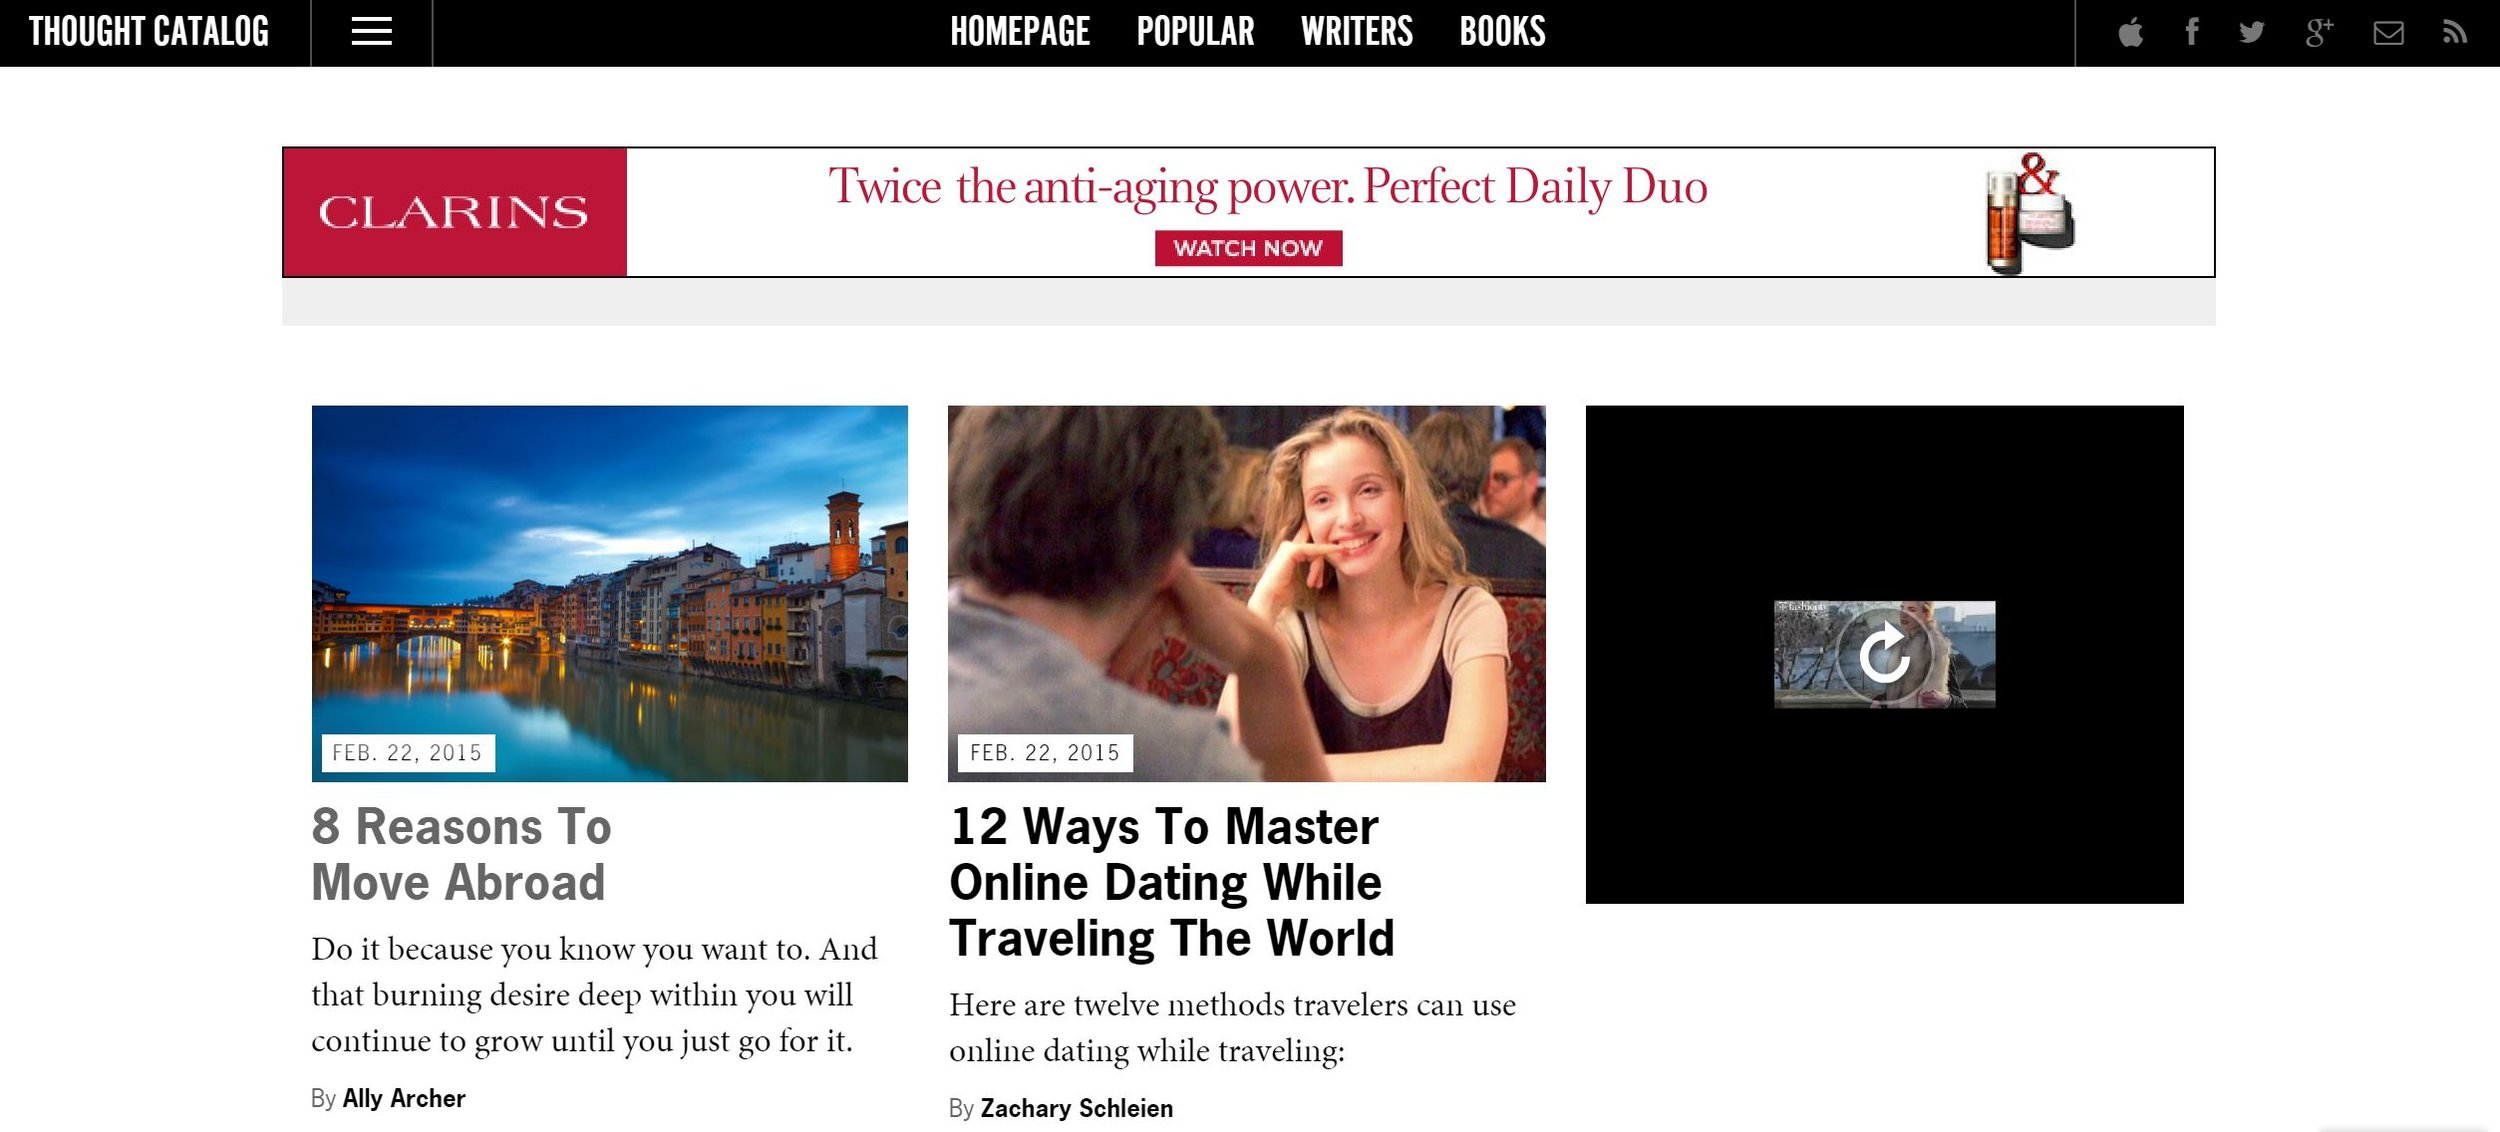 Screenshot of one of my Thought Catalog posts published on the left! - February 2015